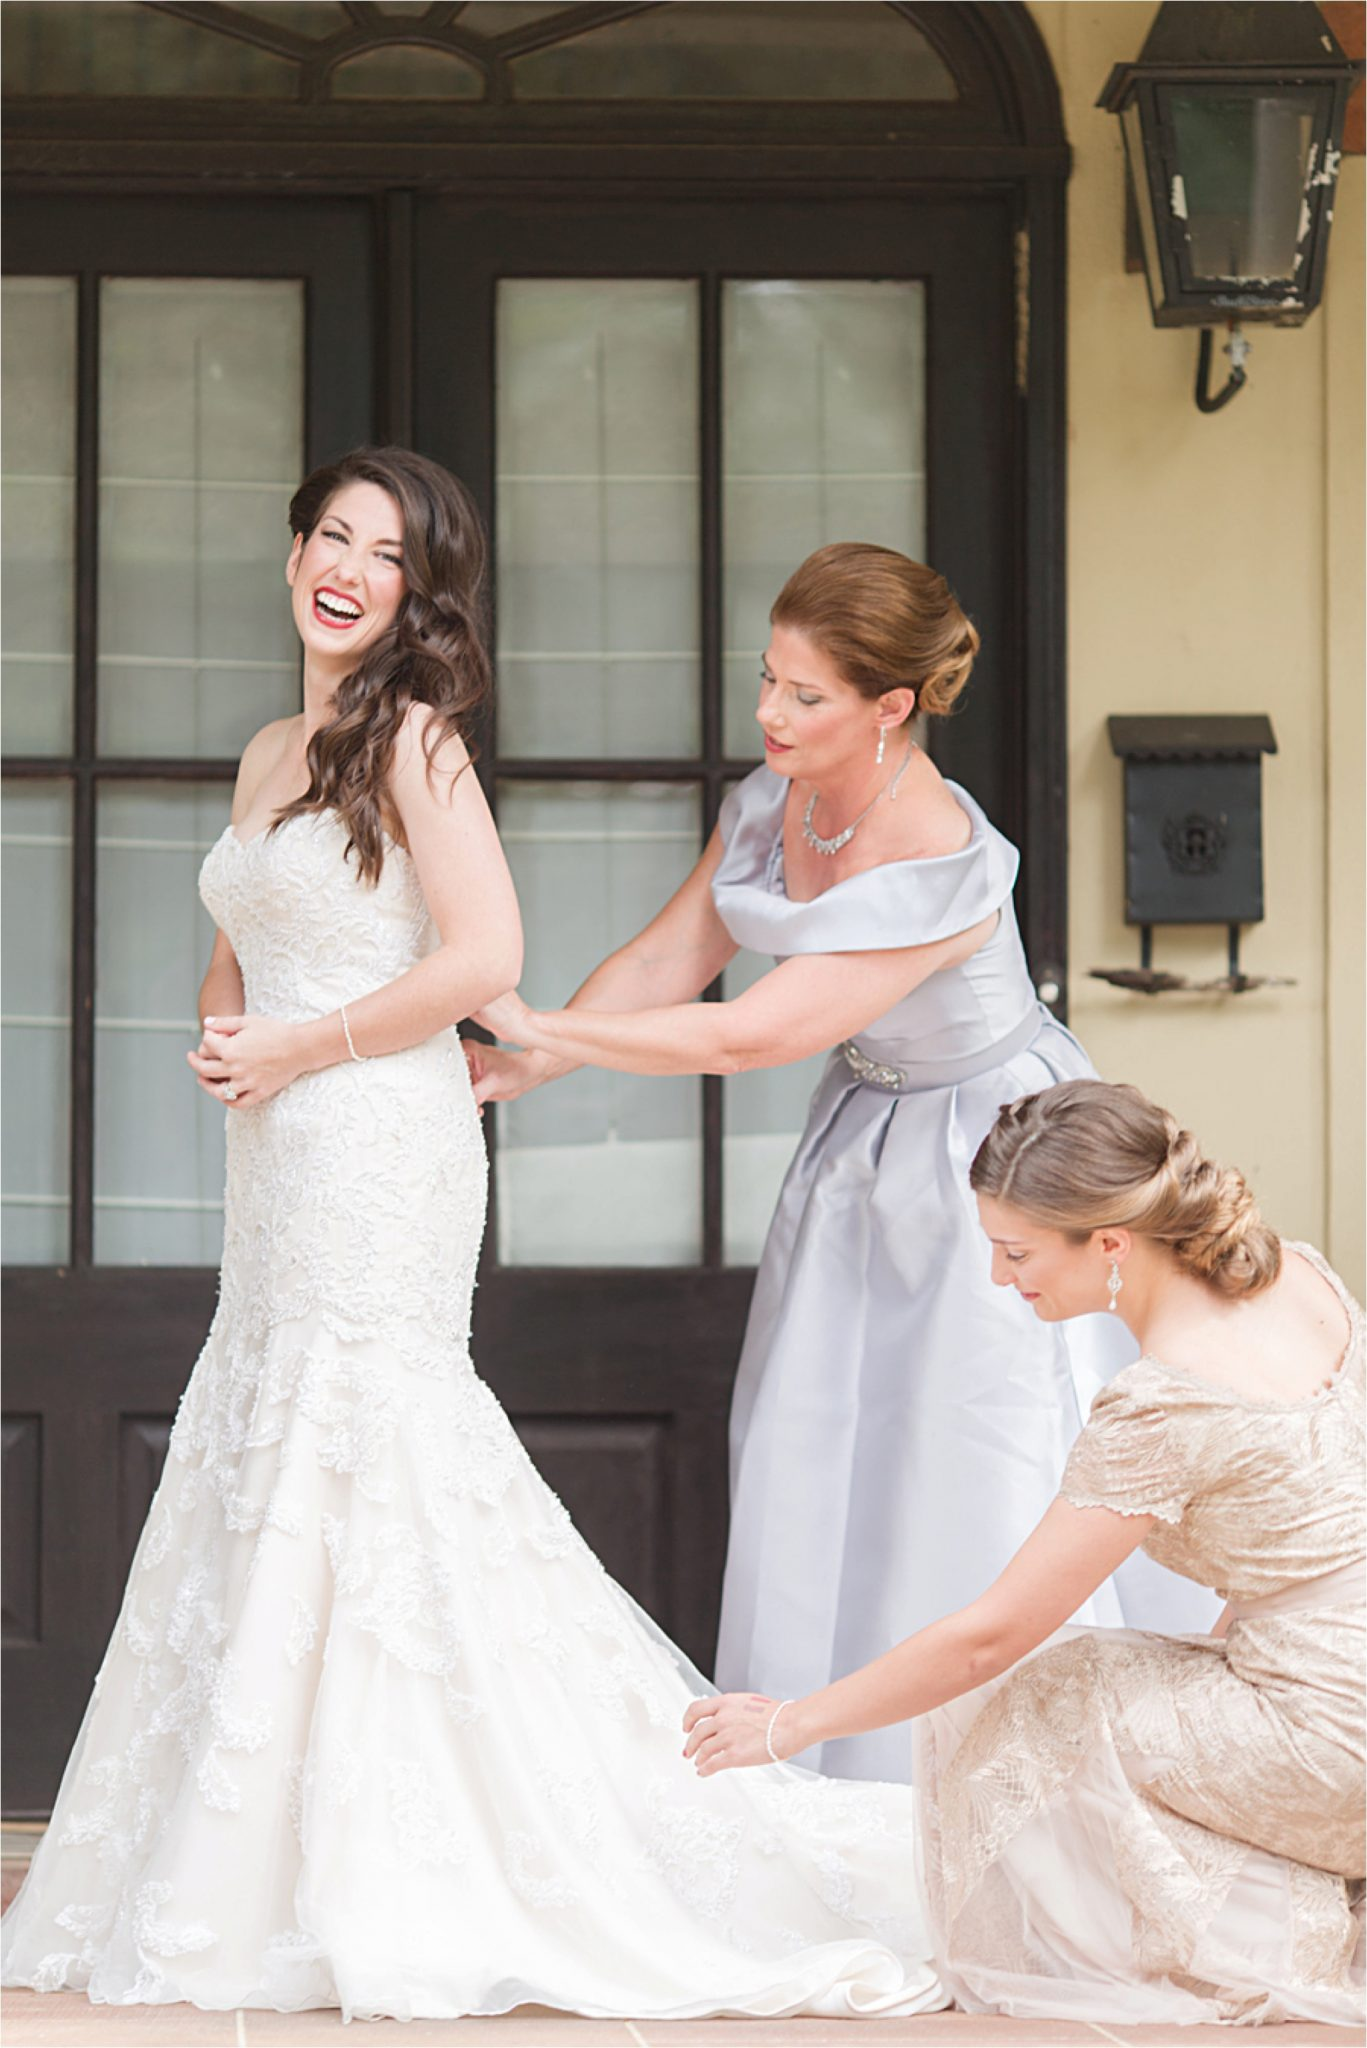 wedding day-wedding photographer-mother-daughter-sister-maid of honor-bride-mother of the bride